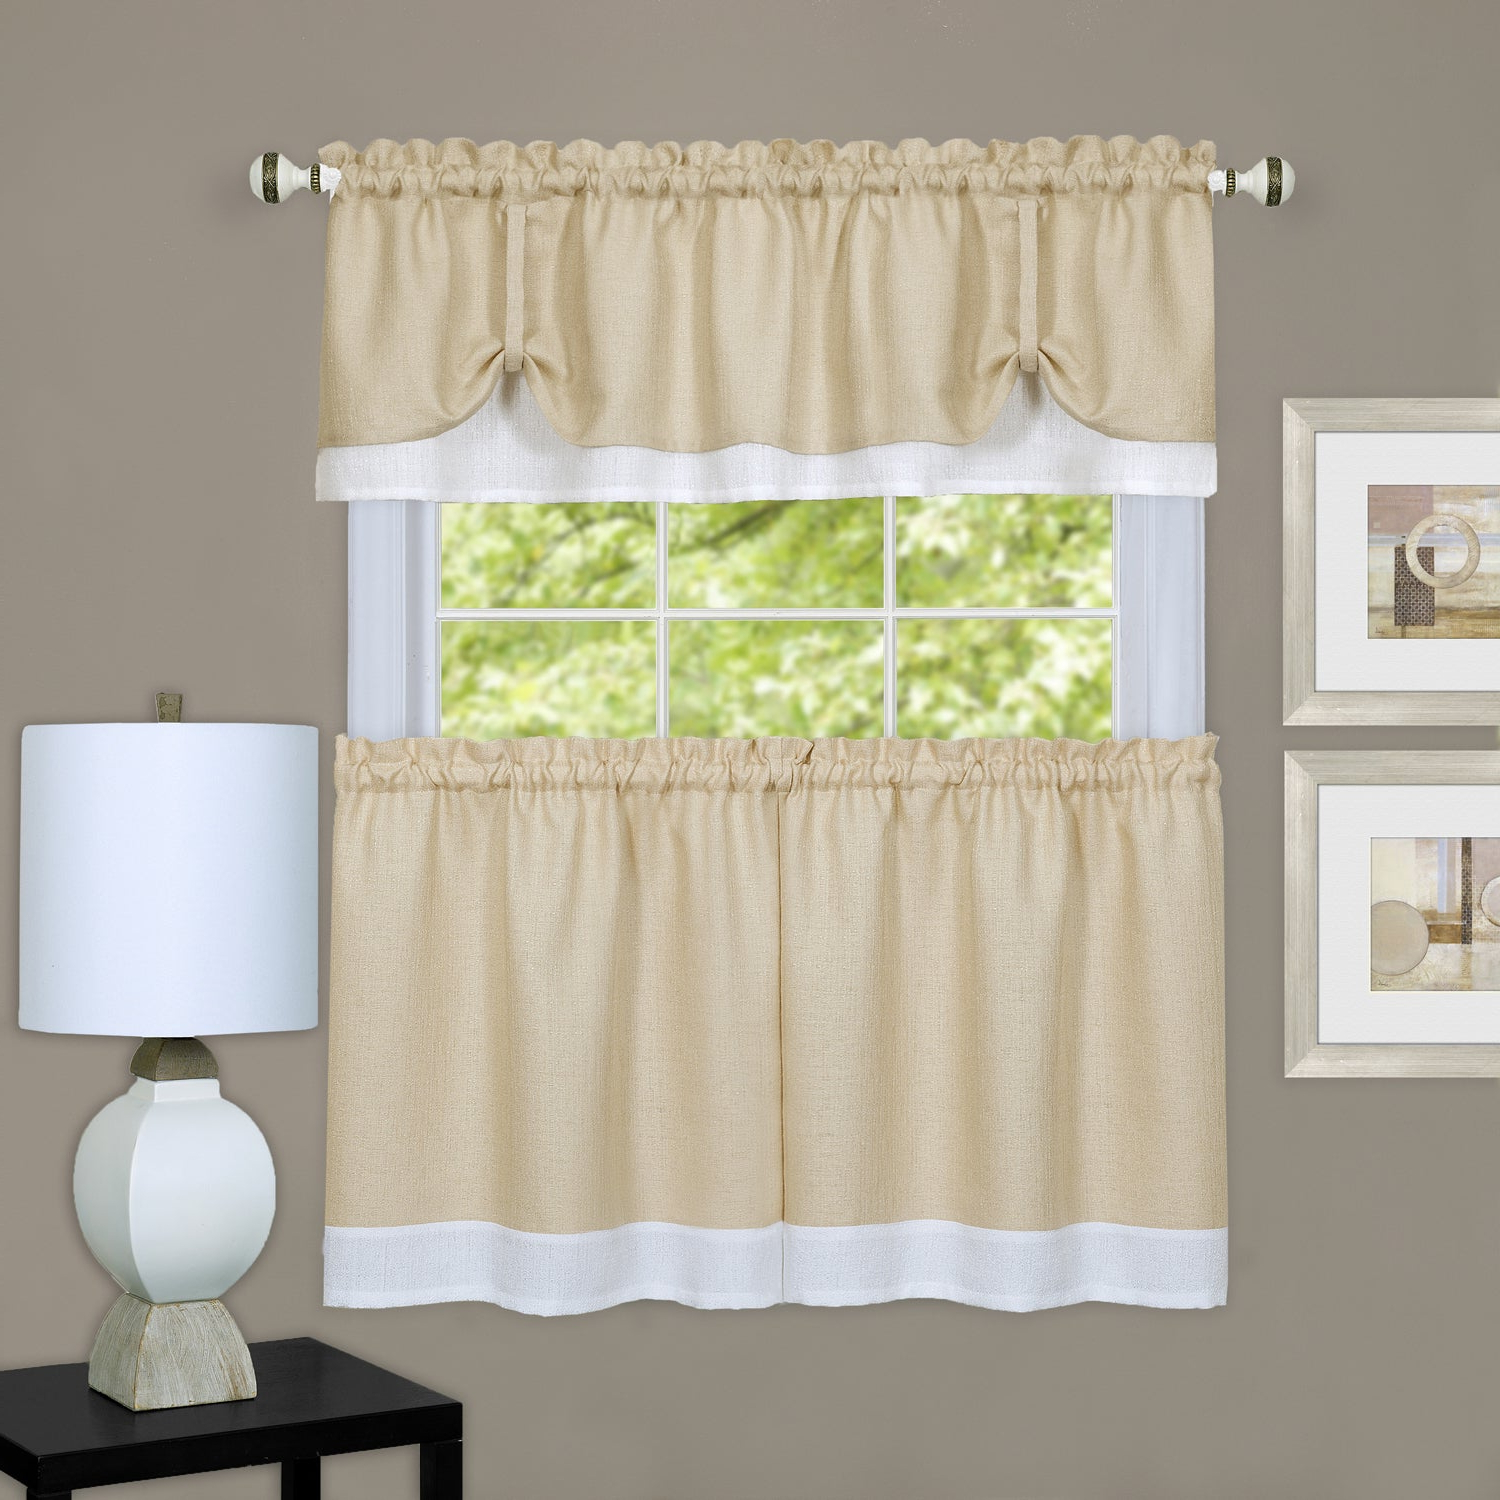 Famous Spring Daisy Tiered Curtain 3 Piece Sets Within Double Layer Tie Up Tan/ White 3 Piece Tier And Valance Window Curtain Set (View 3 of 20)